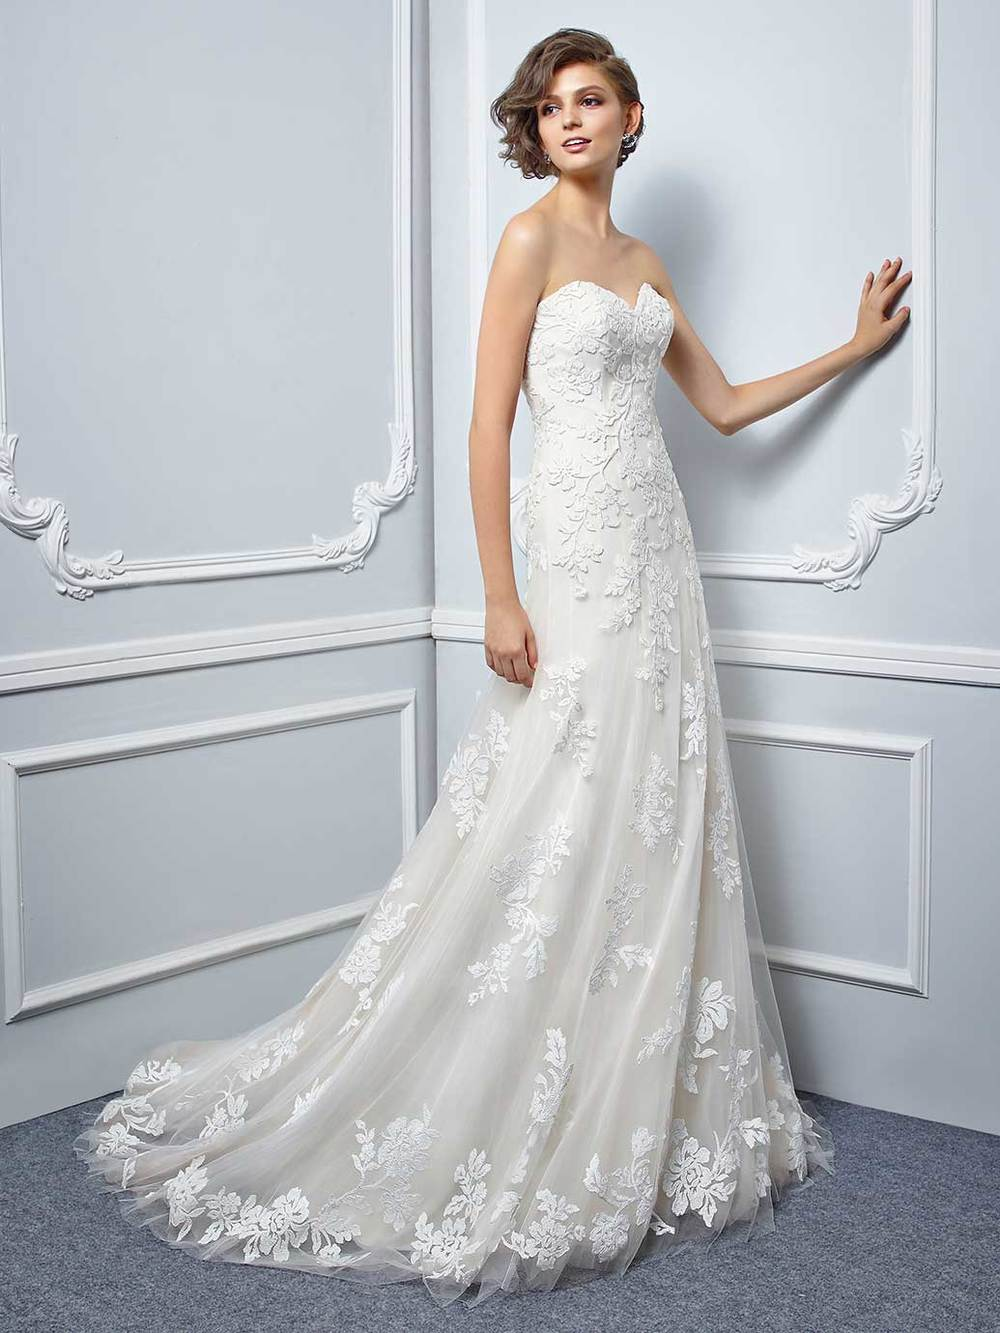 Enzoani Modern Romantic 2017 Collection Bridal Gowns UK